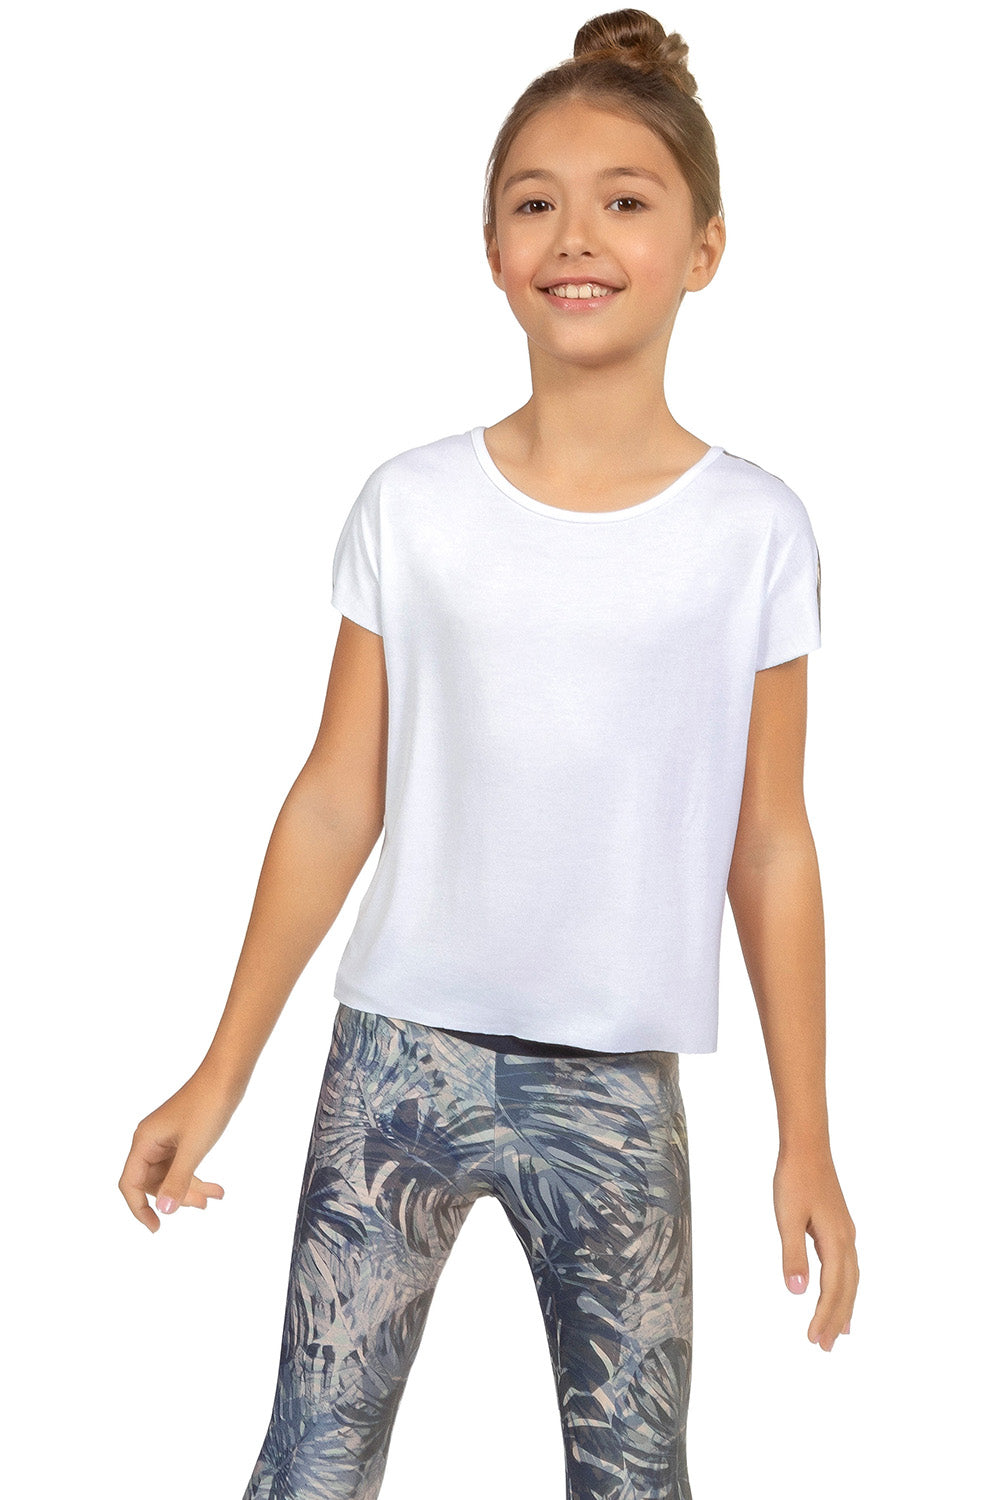 High Energy Kids Blouse